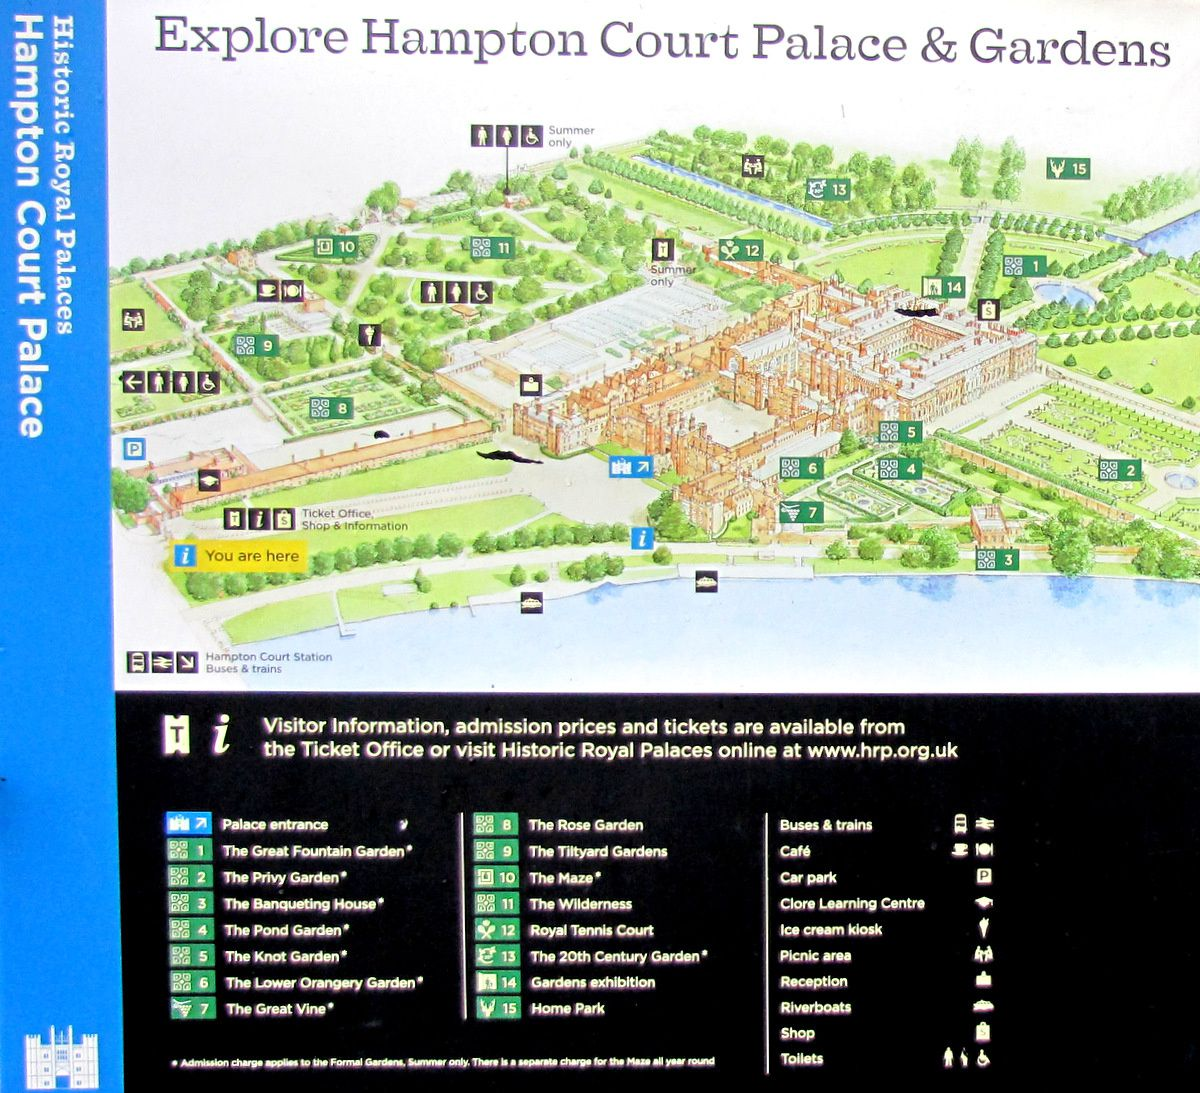 Le grand parc, Hampton Court Palace